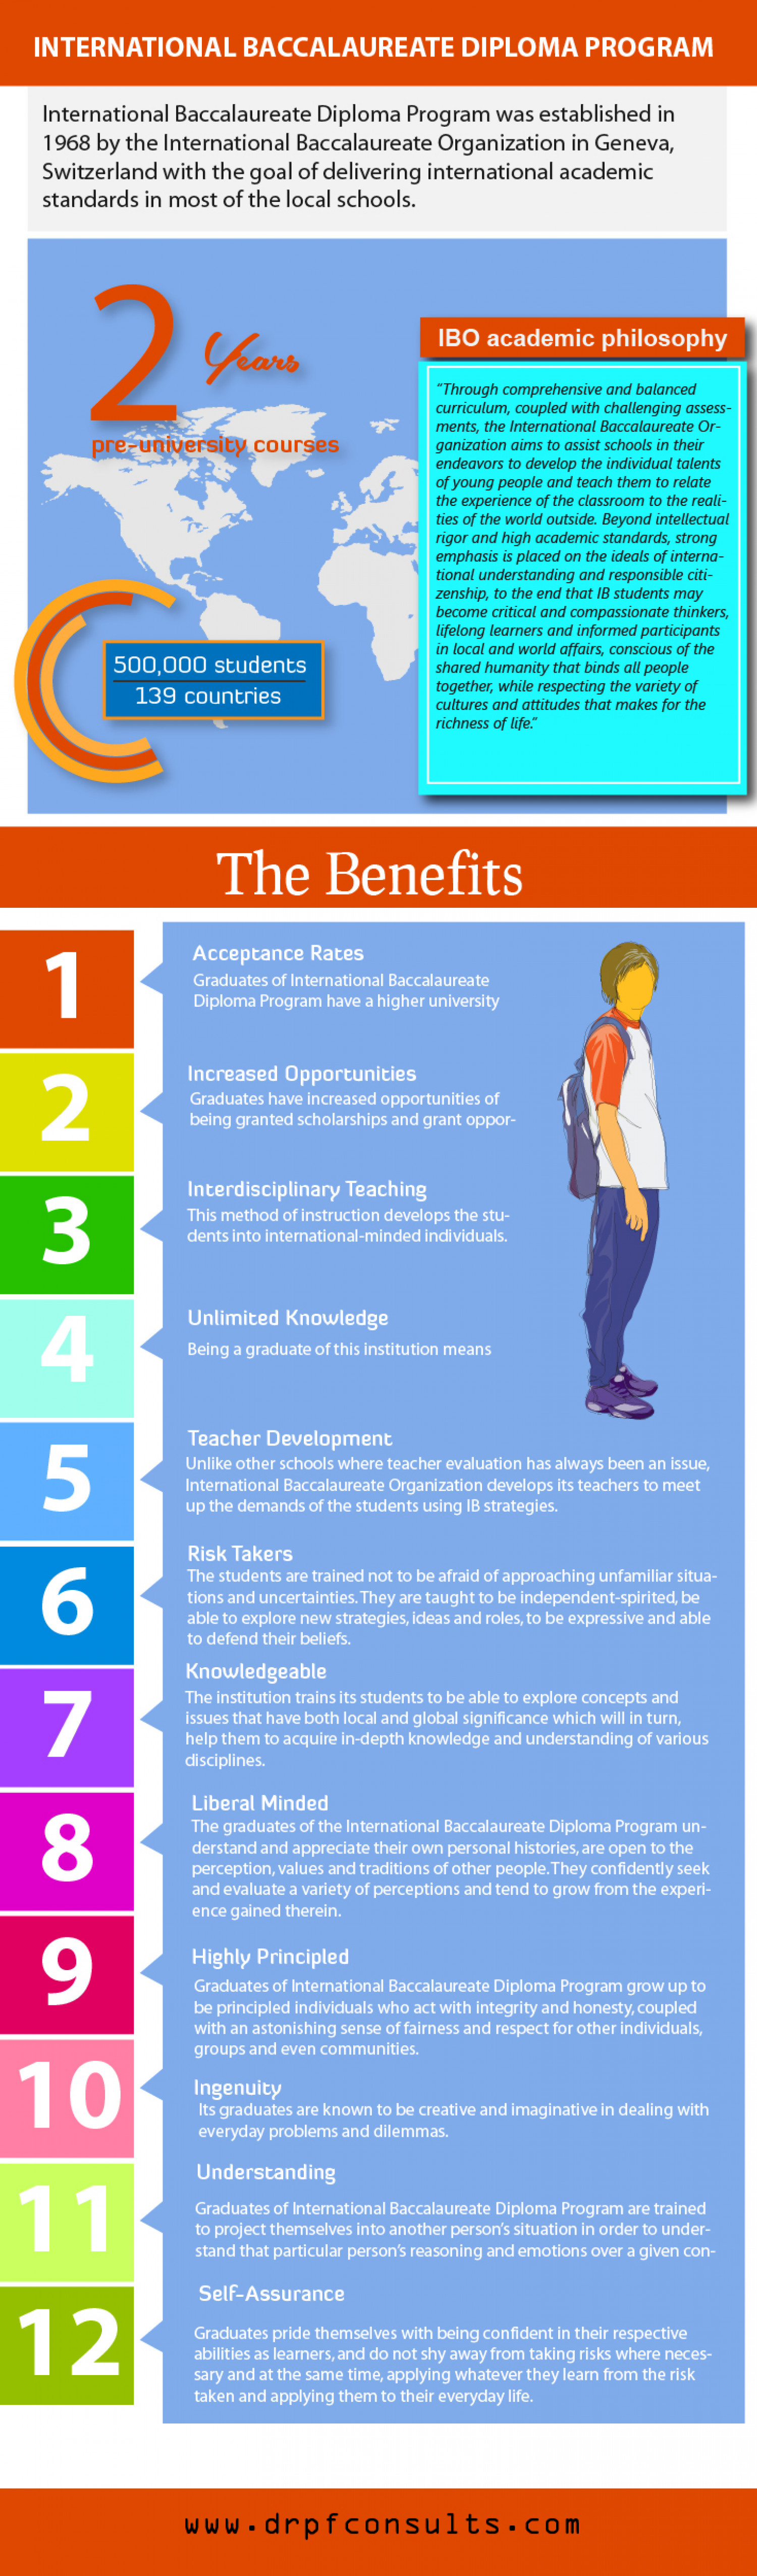 international baccalaureate diploma program ly international baccalaureate diploma program infographic